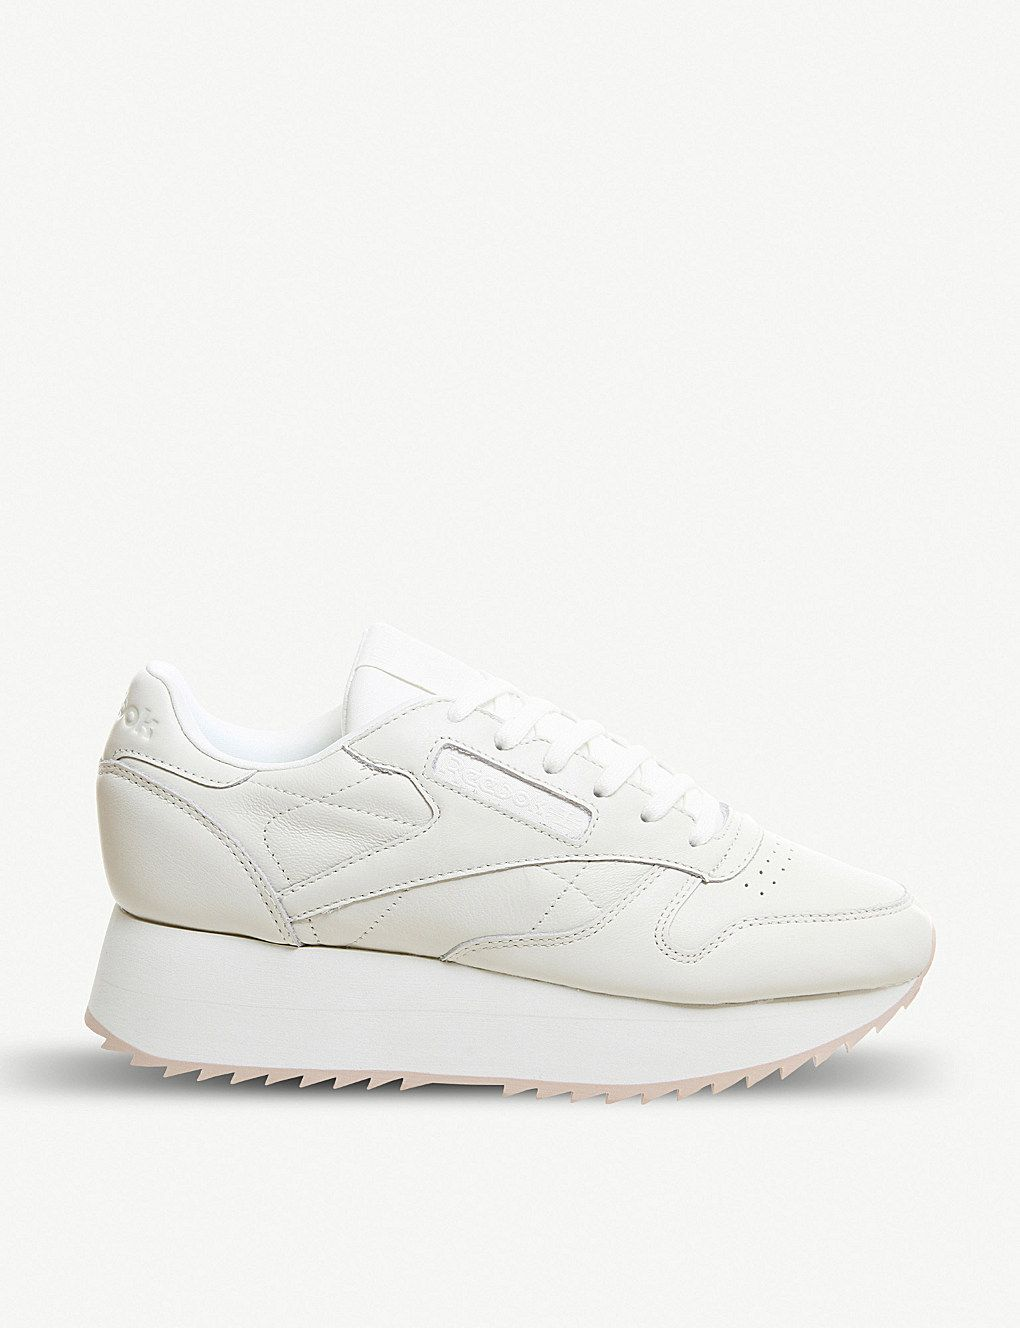 bd6a2ad205b REEBOK Classic Bold leather platform trainers in 2019